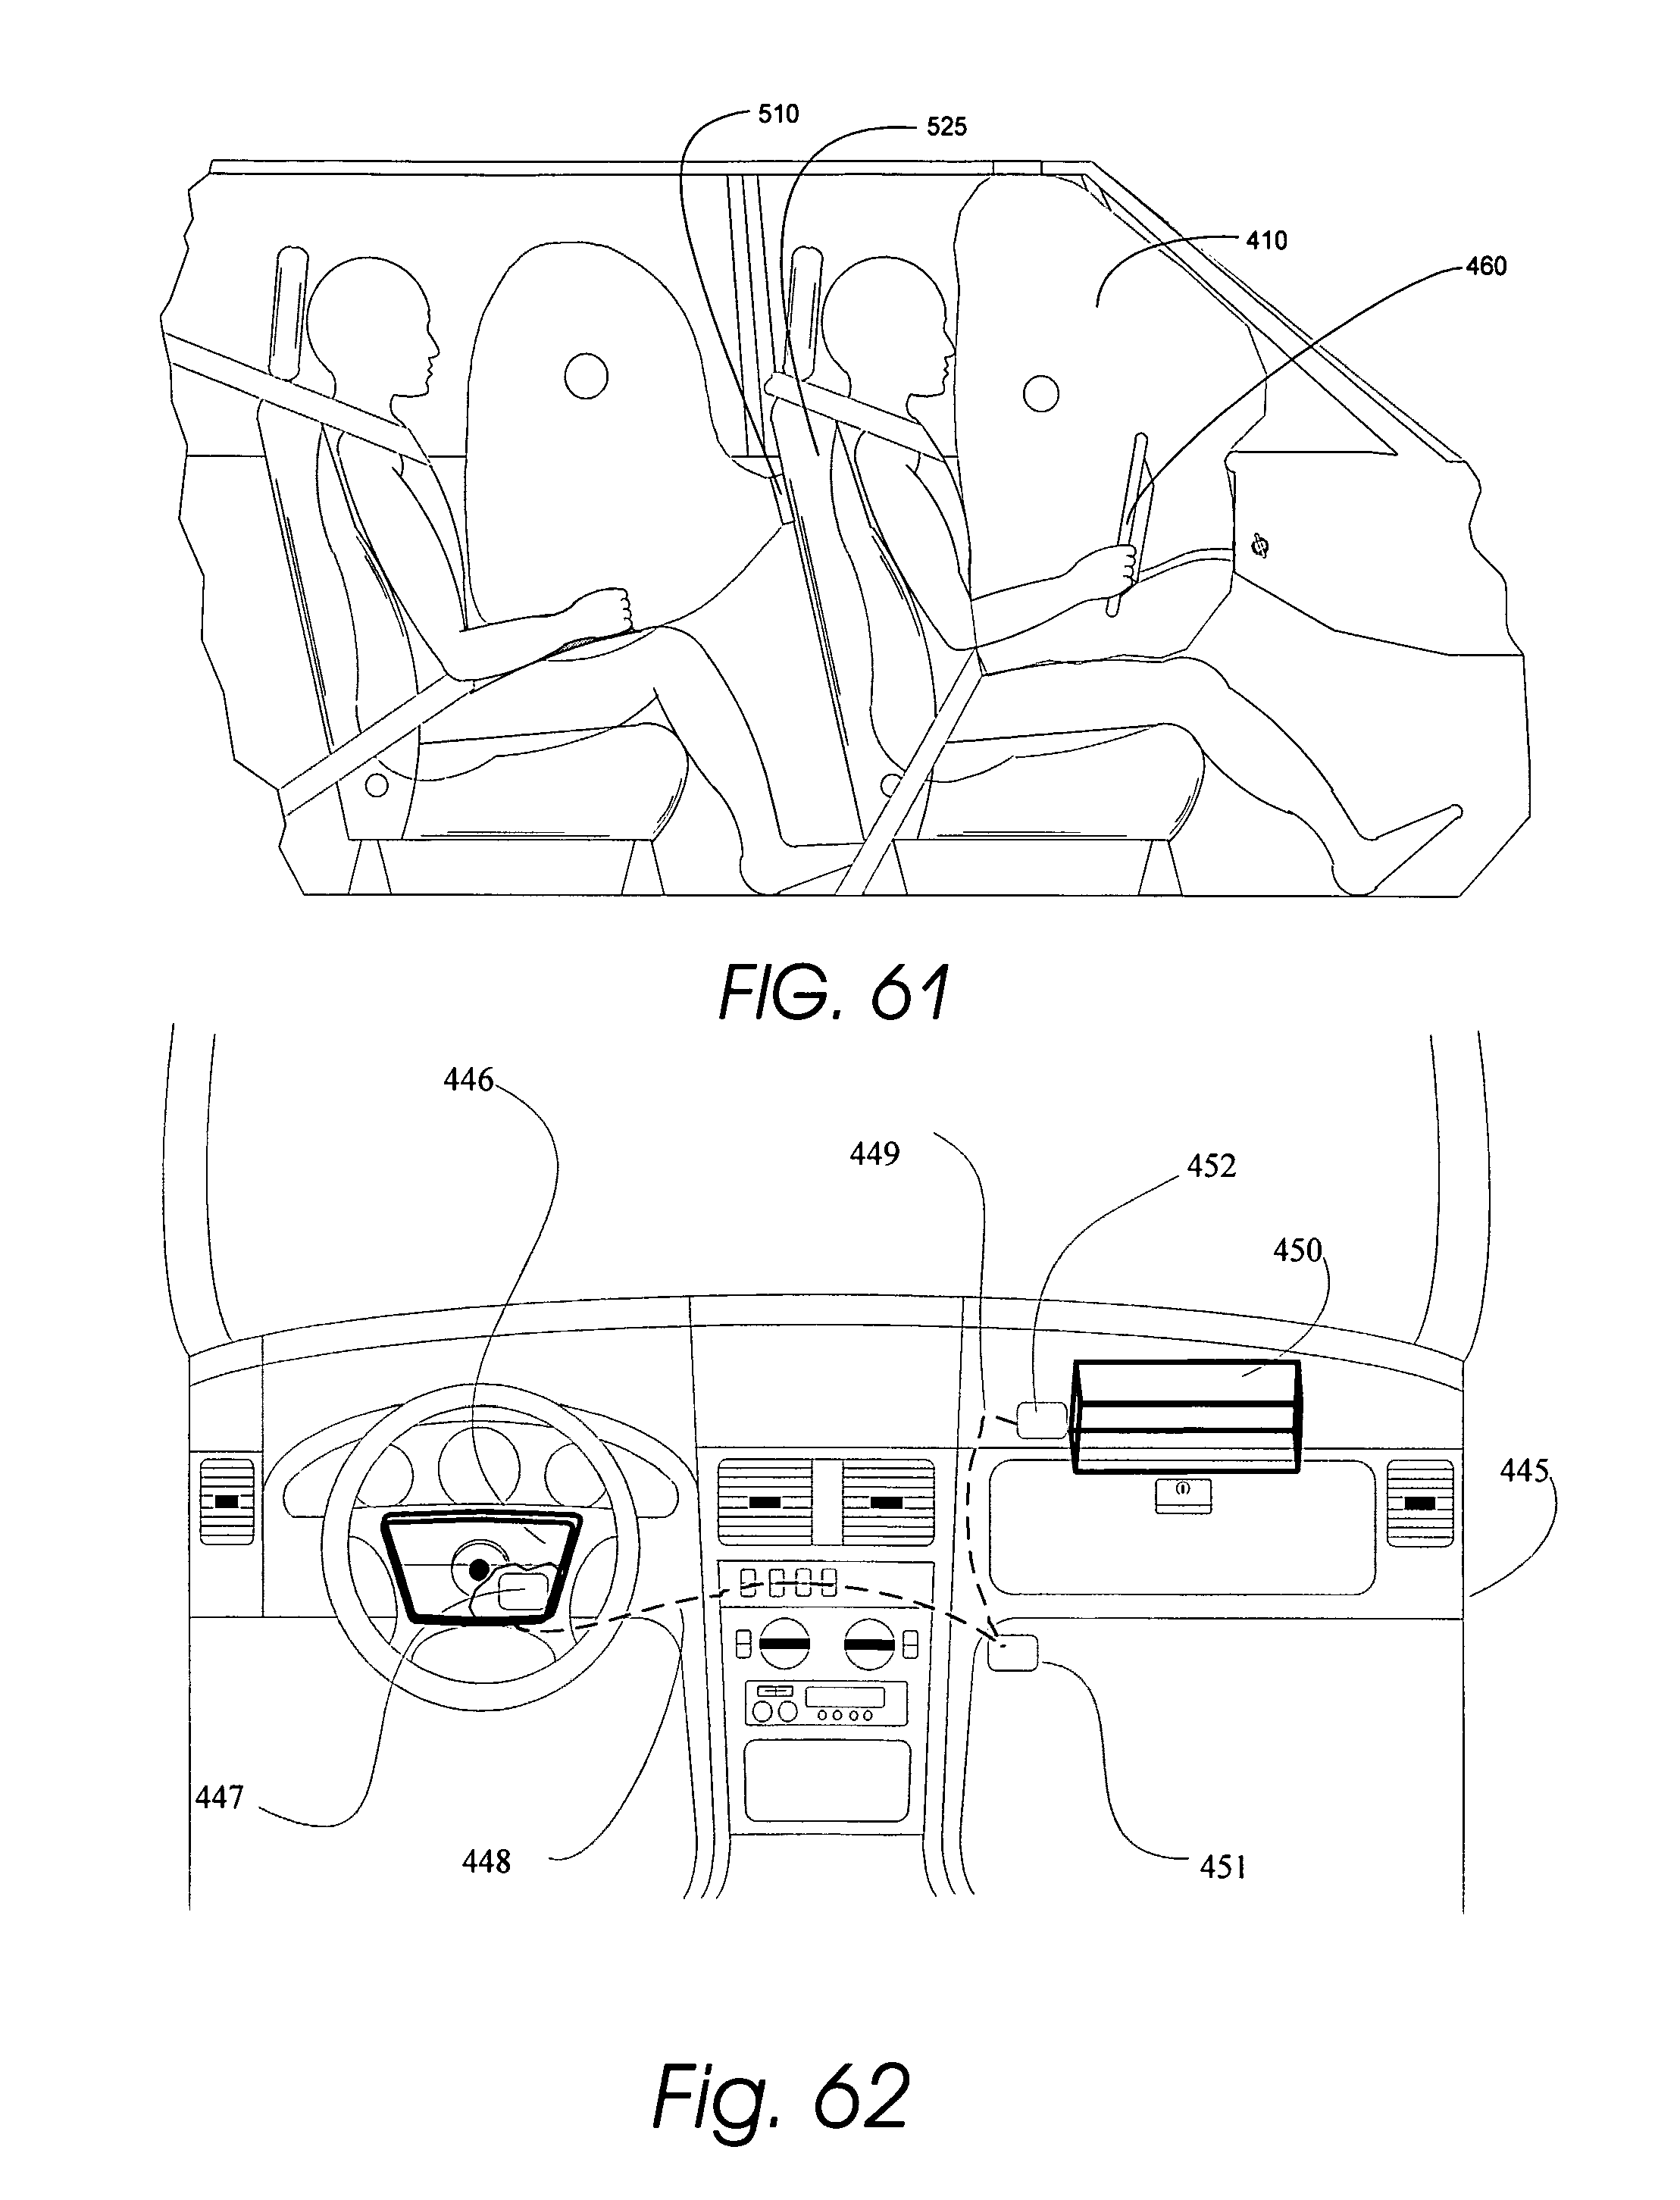 Thread Wiring Aftermarket Headunit To Mach 460 Amps Correctly Patent Us 7421321 B2 Images